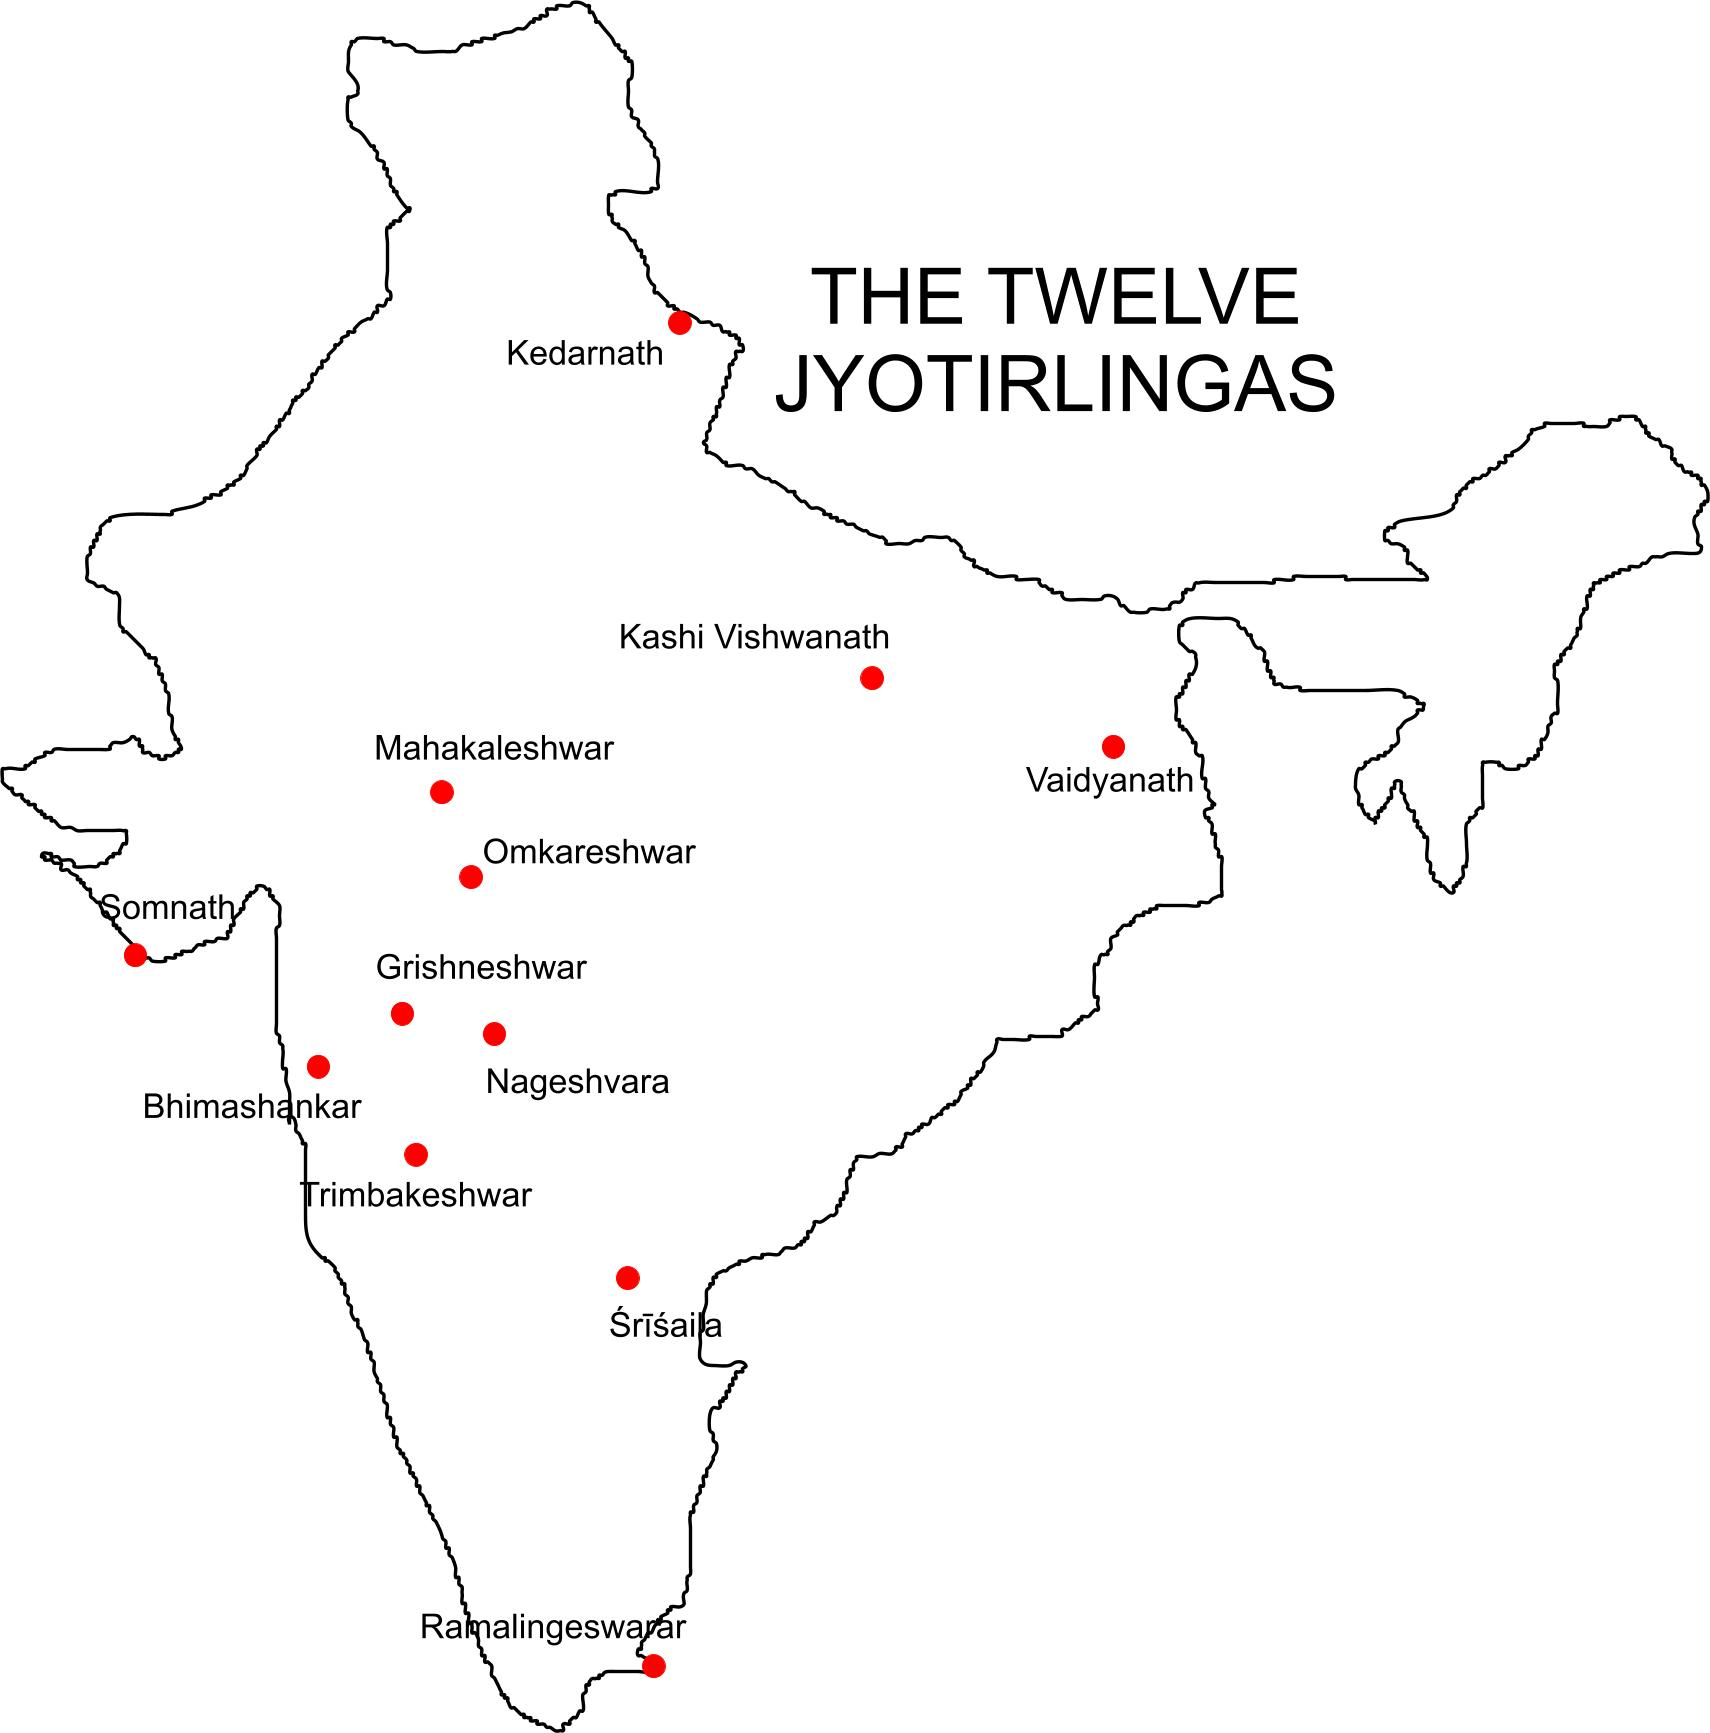 File:Twelve-jyotirlingas-map.jpg - Wikimedia Commons on gaya india map, nanjing india map, magadha india map, gandhara india map, raipur india map, amritsar india map, prayaga india map, porbandar india map, kanpur india map, srinagar india map, trivandrum india map, india dharamsala map, kanchi india map, vrindavan india map, bhopal india map, shimla india map, goya india map, gurgaon india map, delhi india map, ajanta india map,